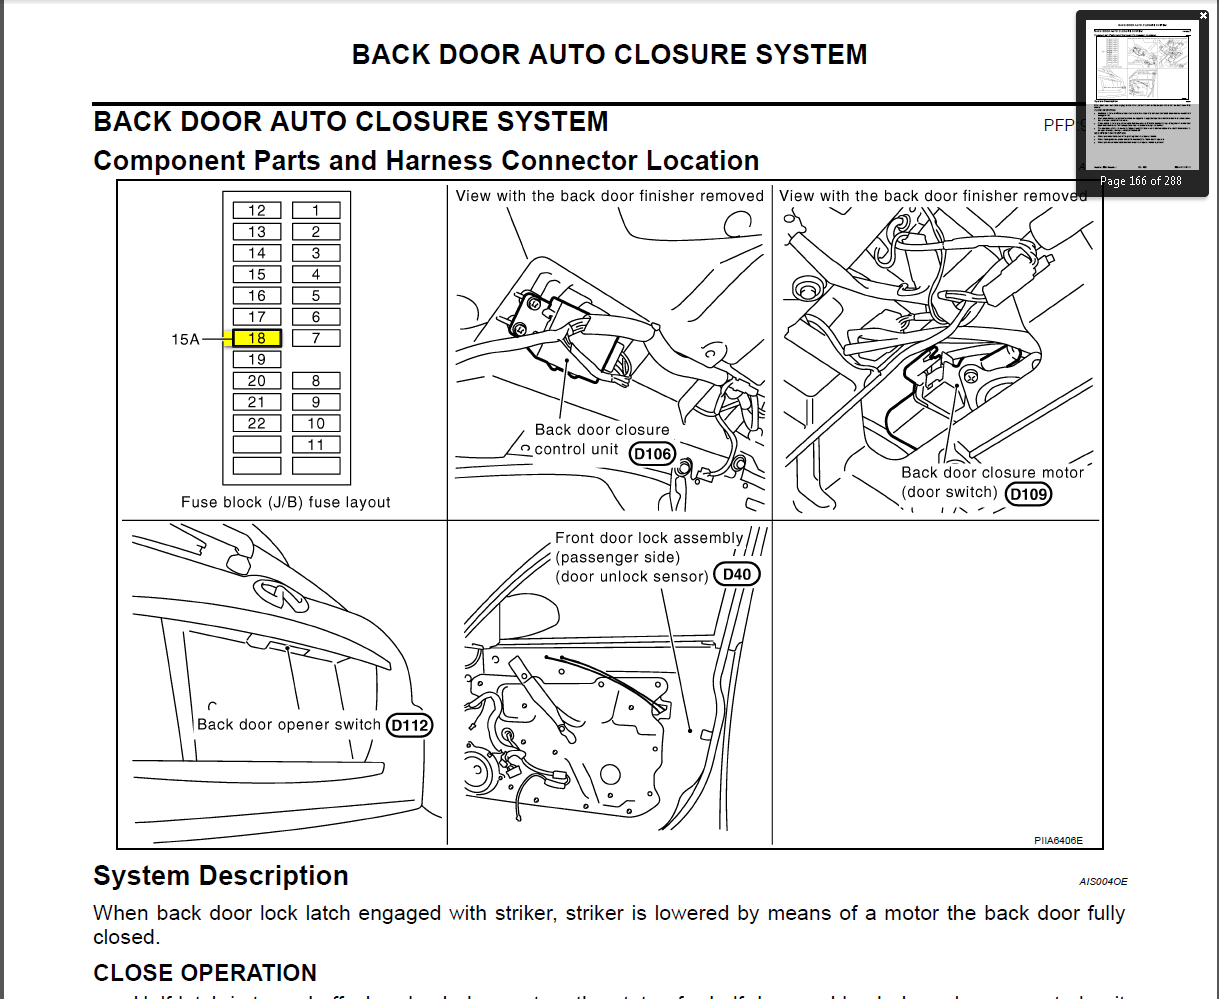 07 Infiniti G35 Fuse Box Location Archive Of Automotive Wiring Diagram For 2012 Ford Mustang 2004 Image Details Rh Motogurumag Com 2007 G35x